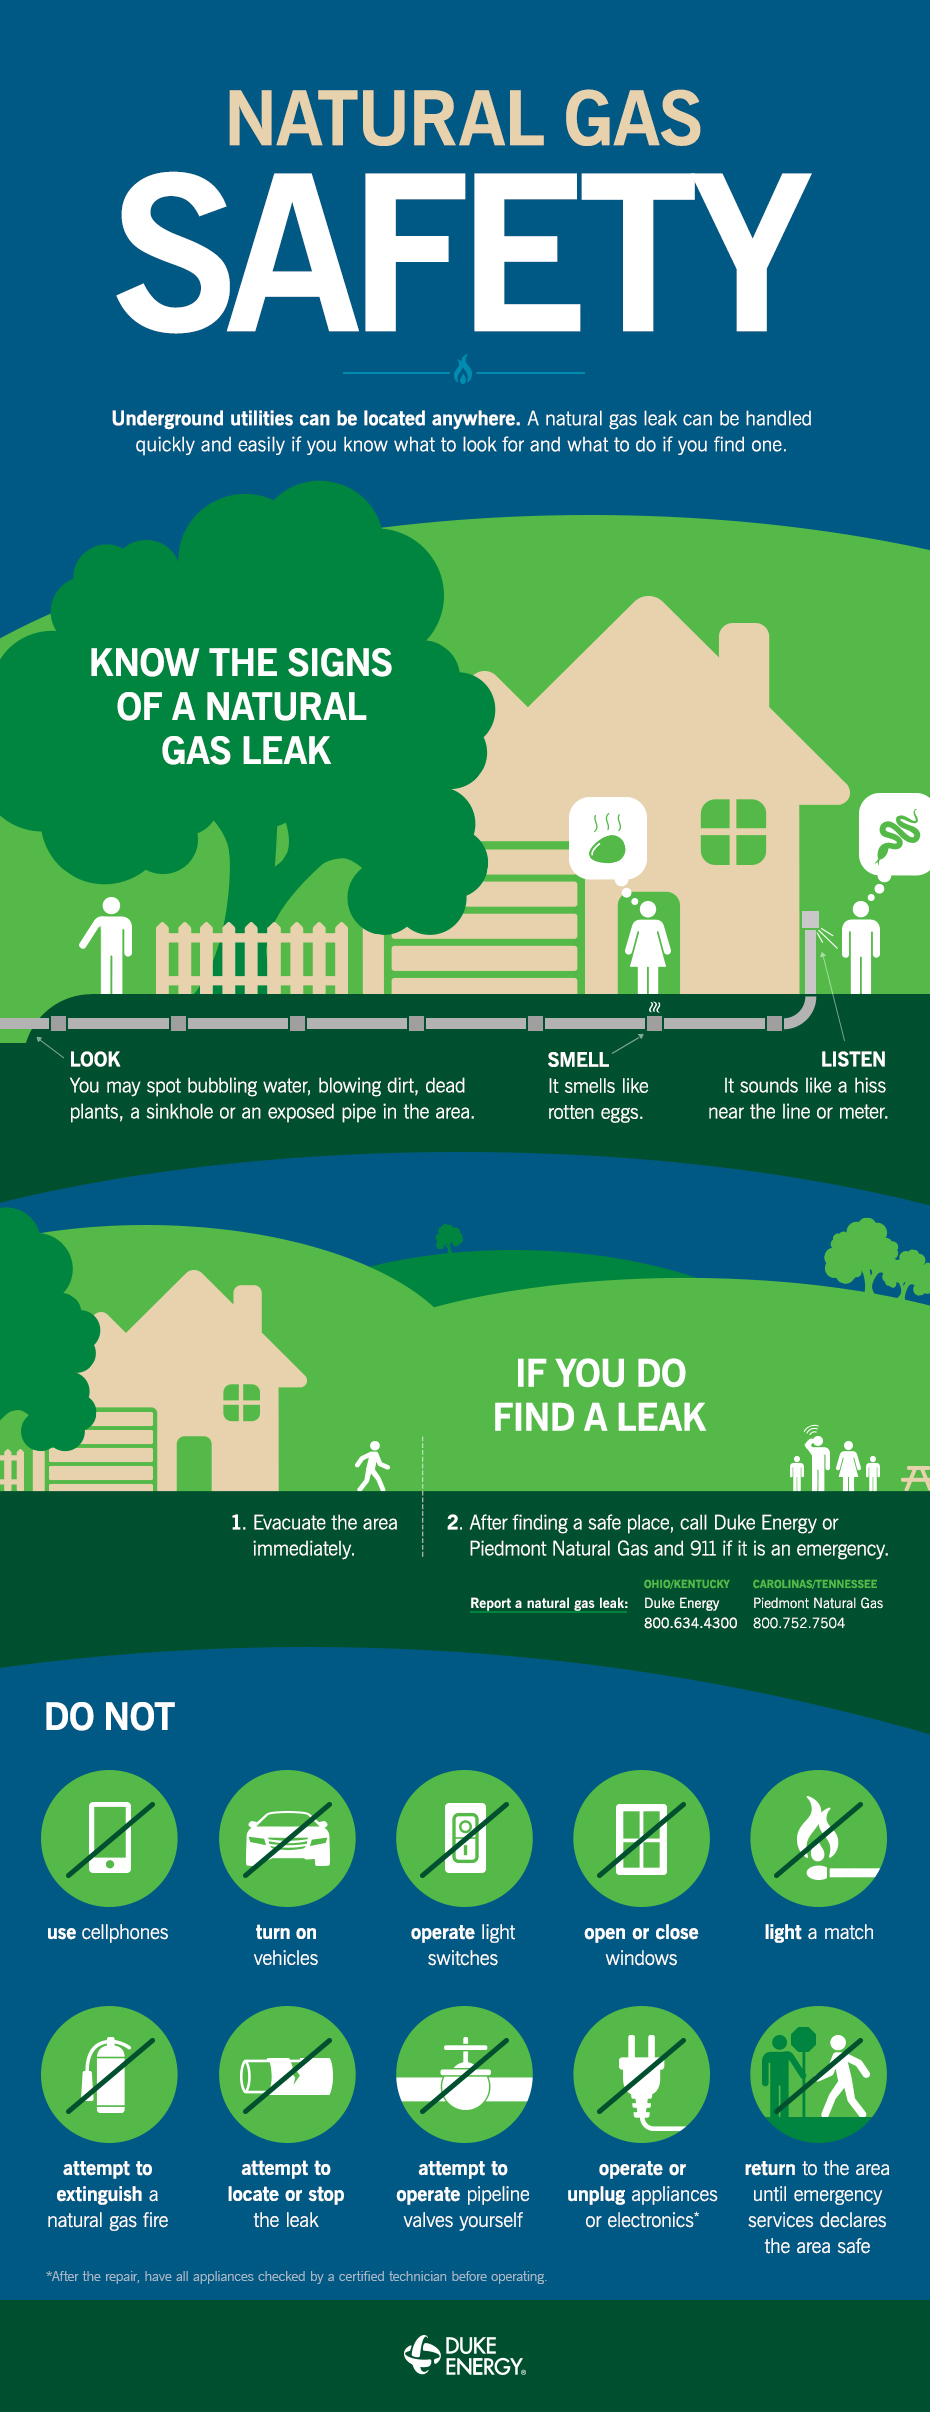 170398-Natural-Gas-Safety-Infographic-final